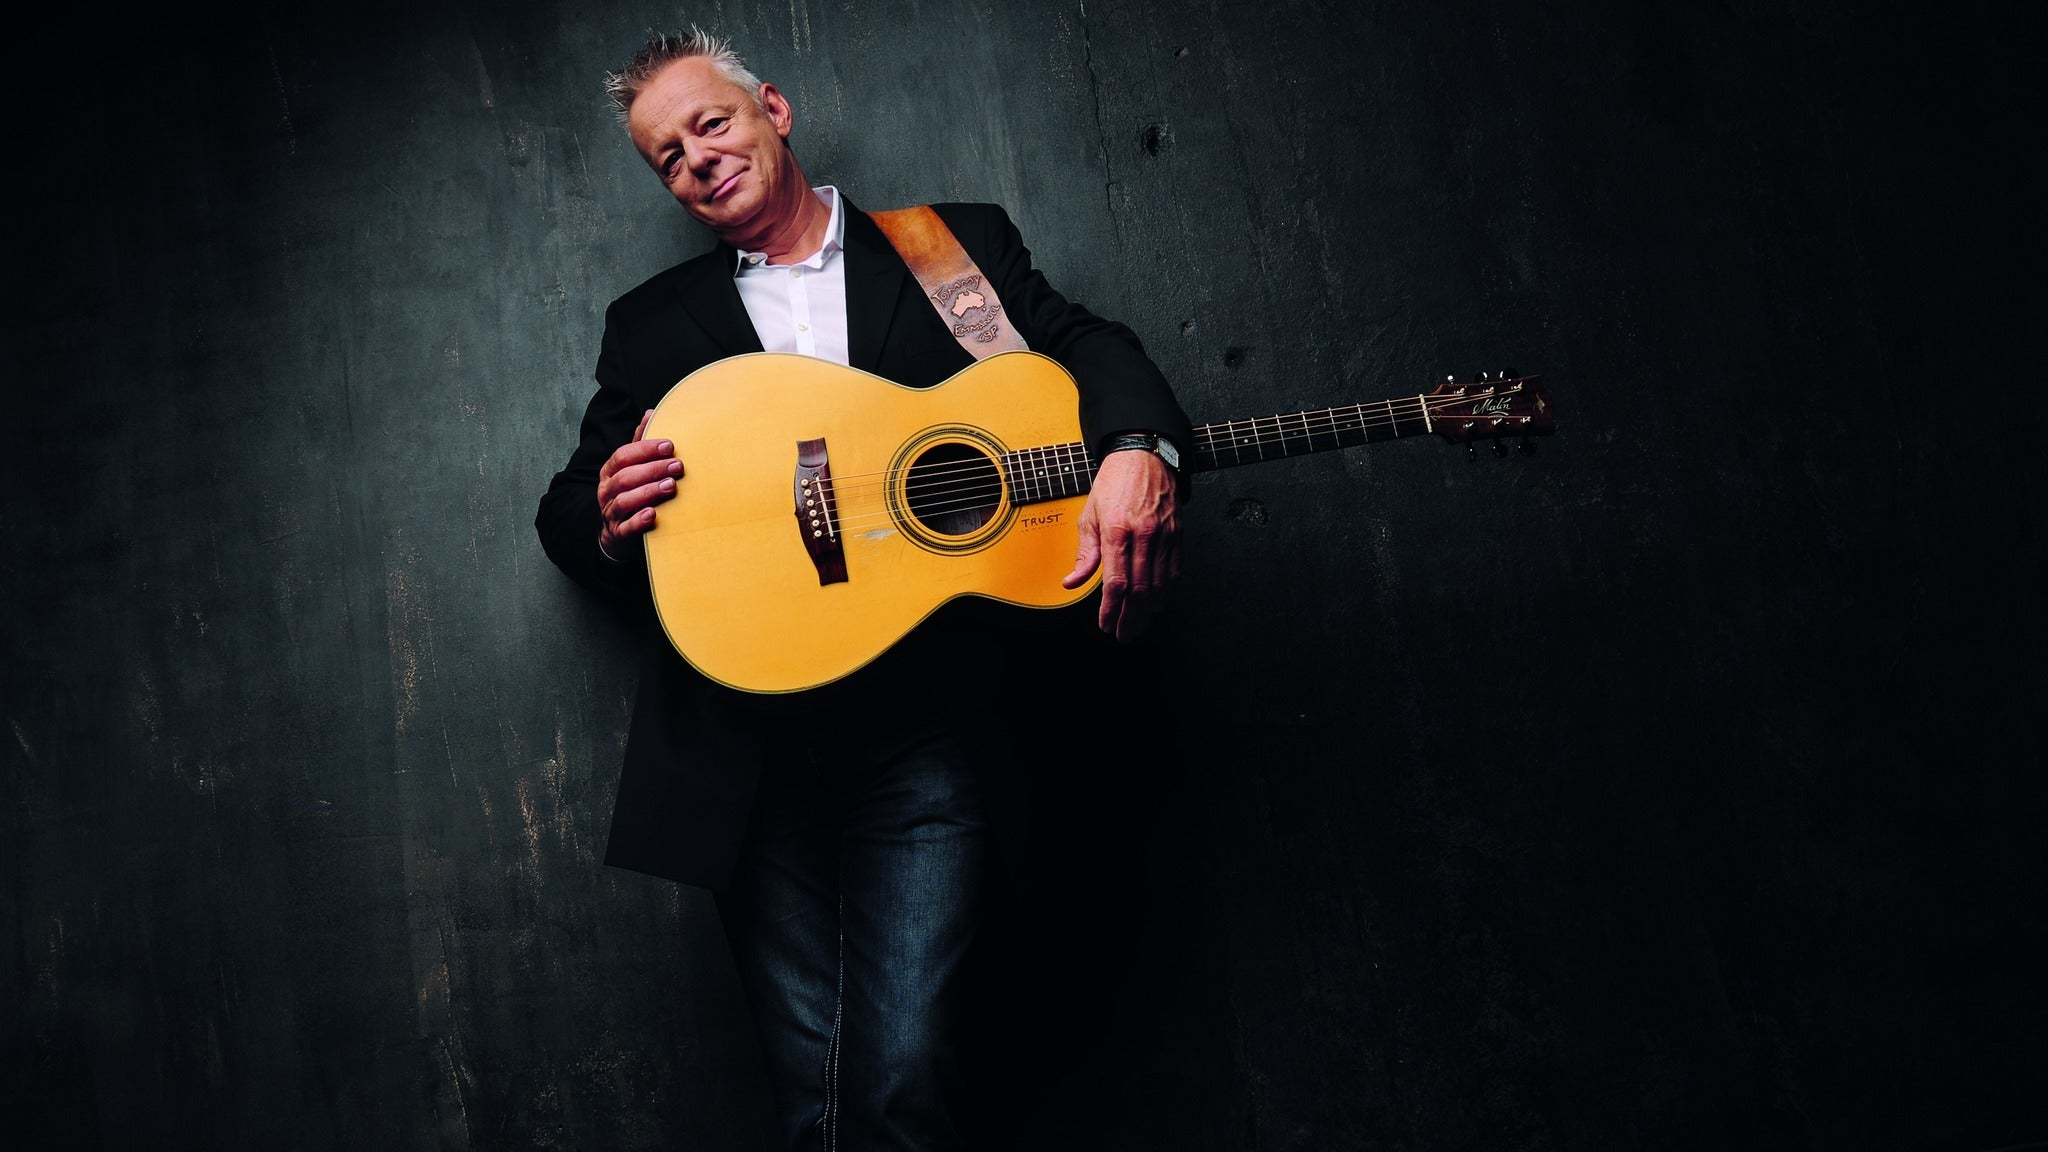 Tommy Emmanuel at Ridgefield Playhouse - Ridgefield, CT 06877